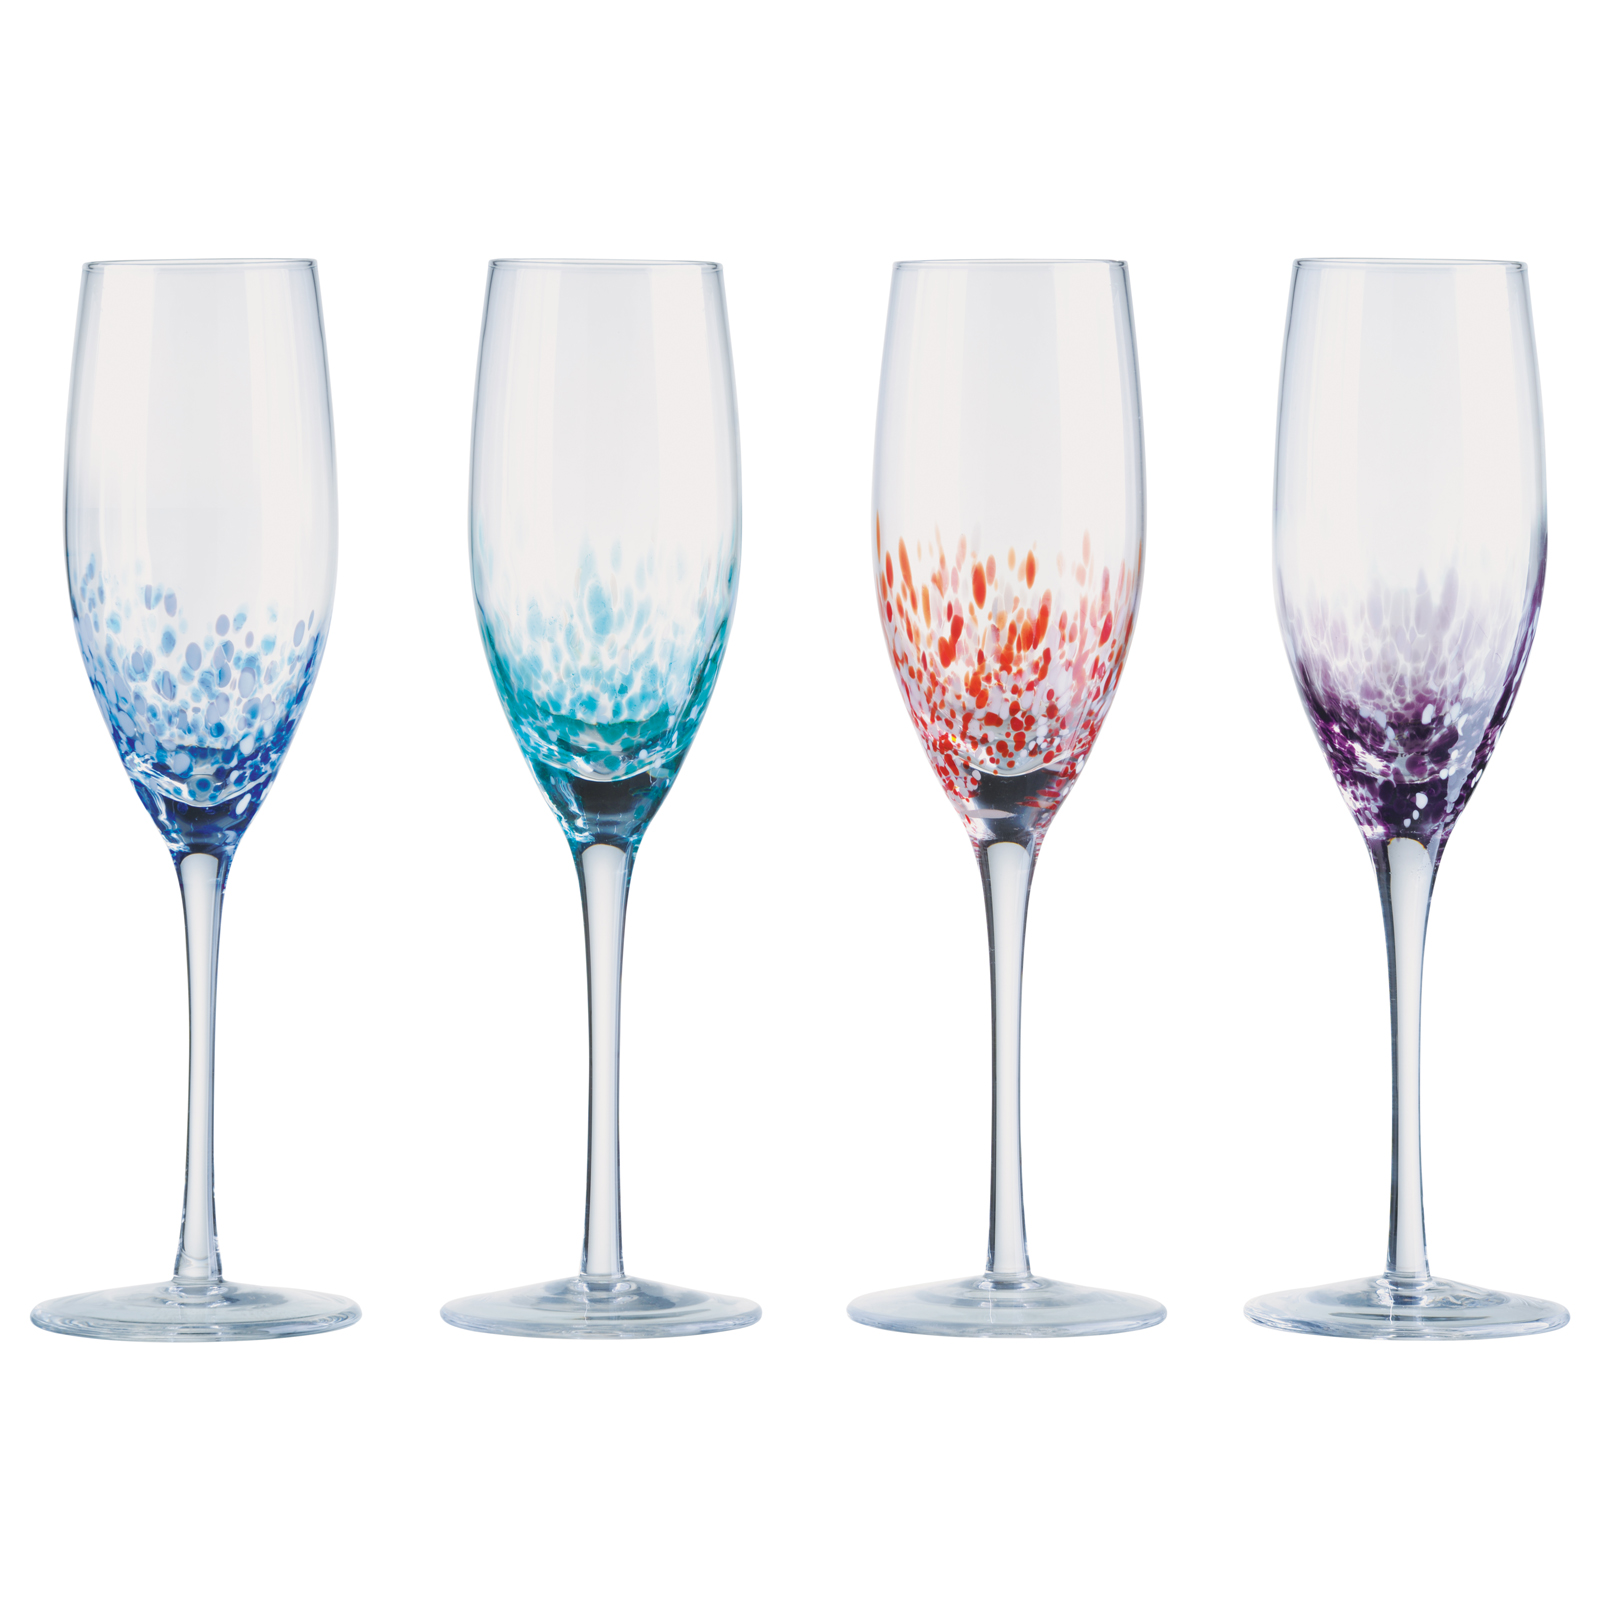 Set of 4 Speckle Gin Glasses by Anton Studio Designs